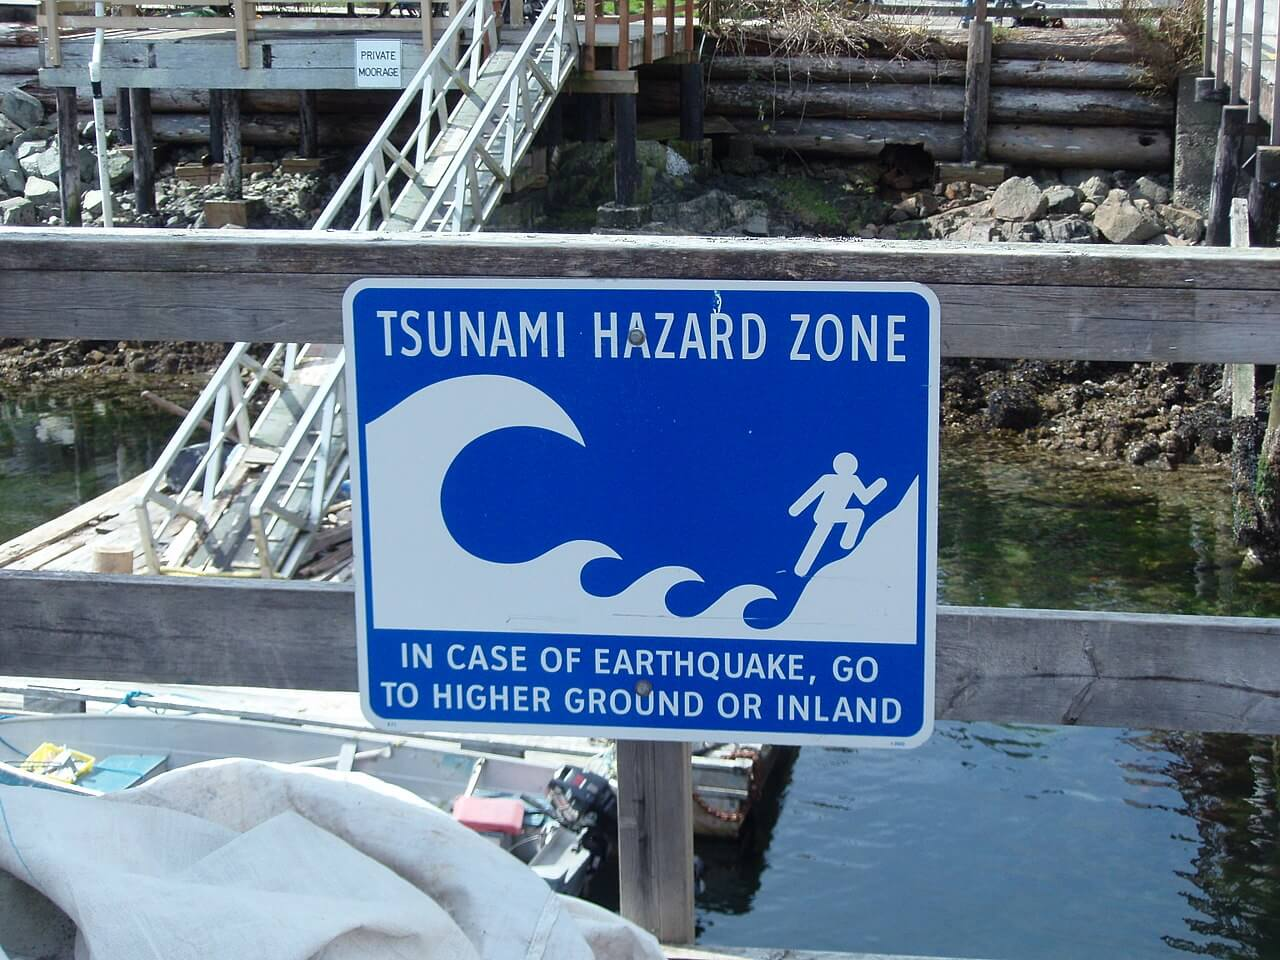 Tsunami warning sign that reads TSUNAMI HAZARD ZONE IN CASE OF EARTHQUAKE, GO TO HIGHER GROUND OR INLAND.